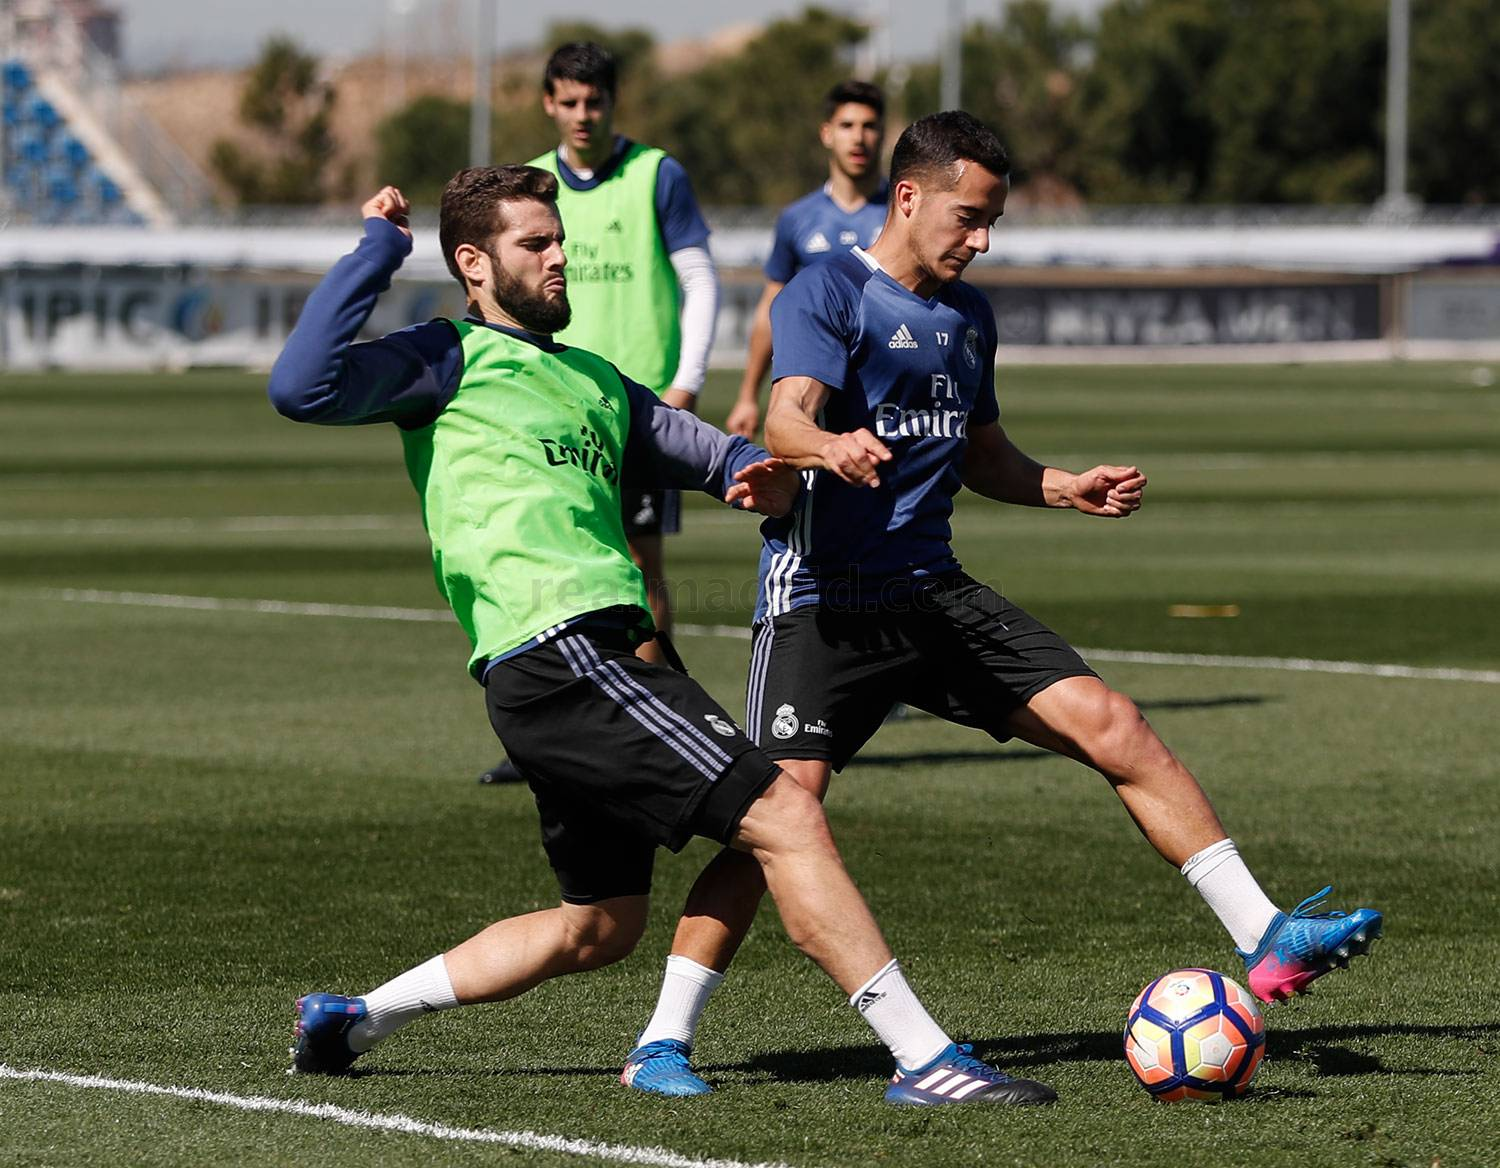 Real Madrid - Entrenamiento del Real Madrid - 09-03-2017